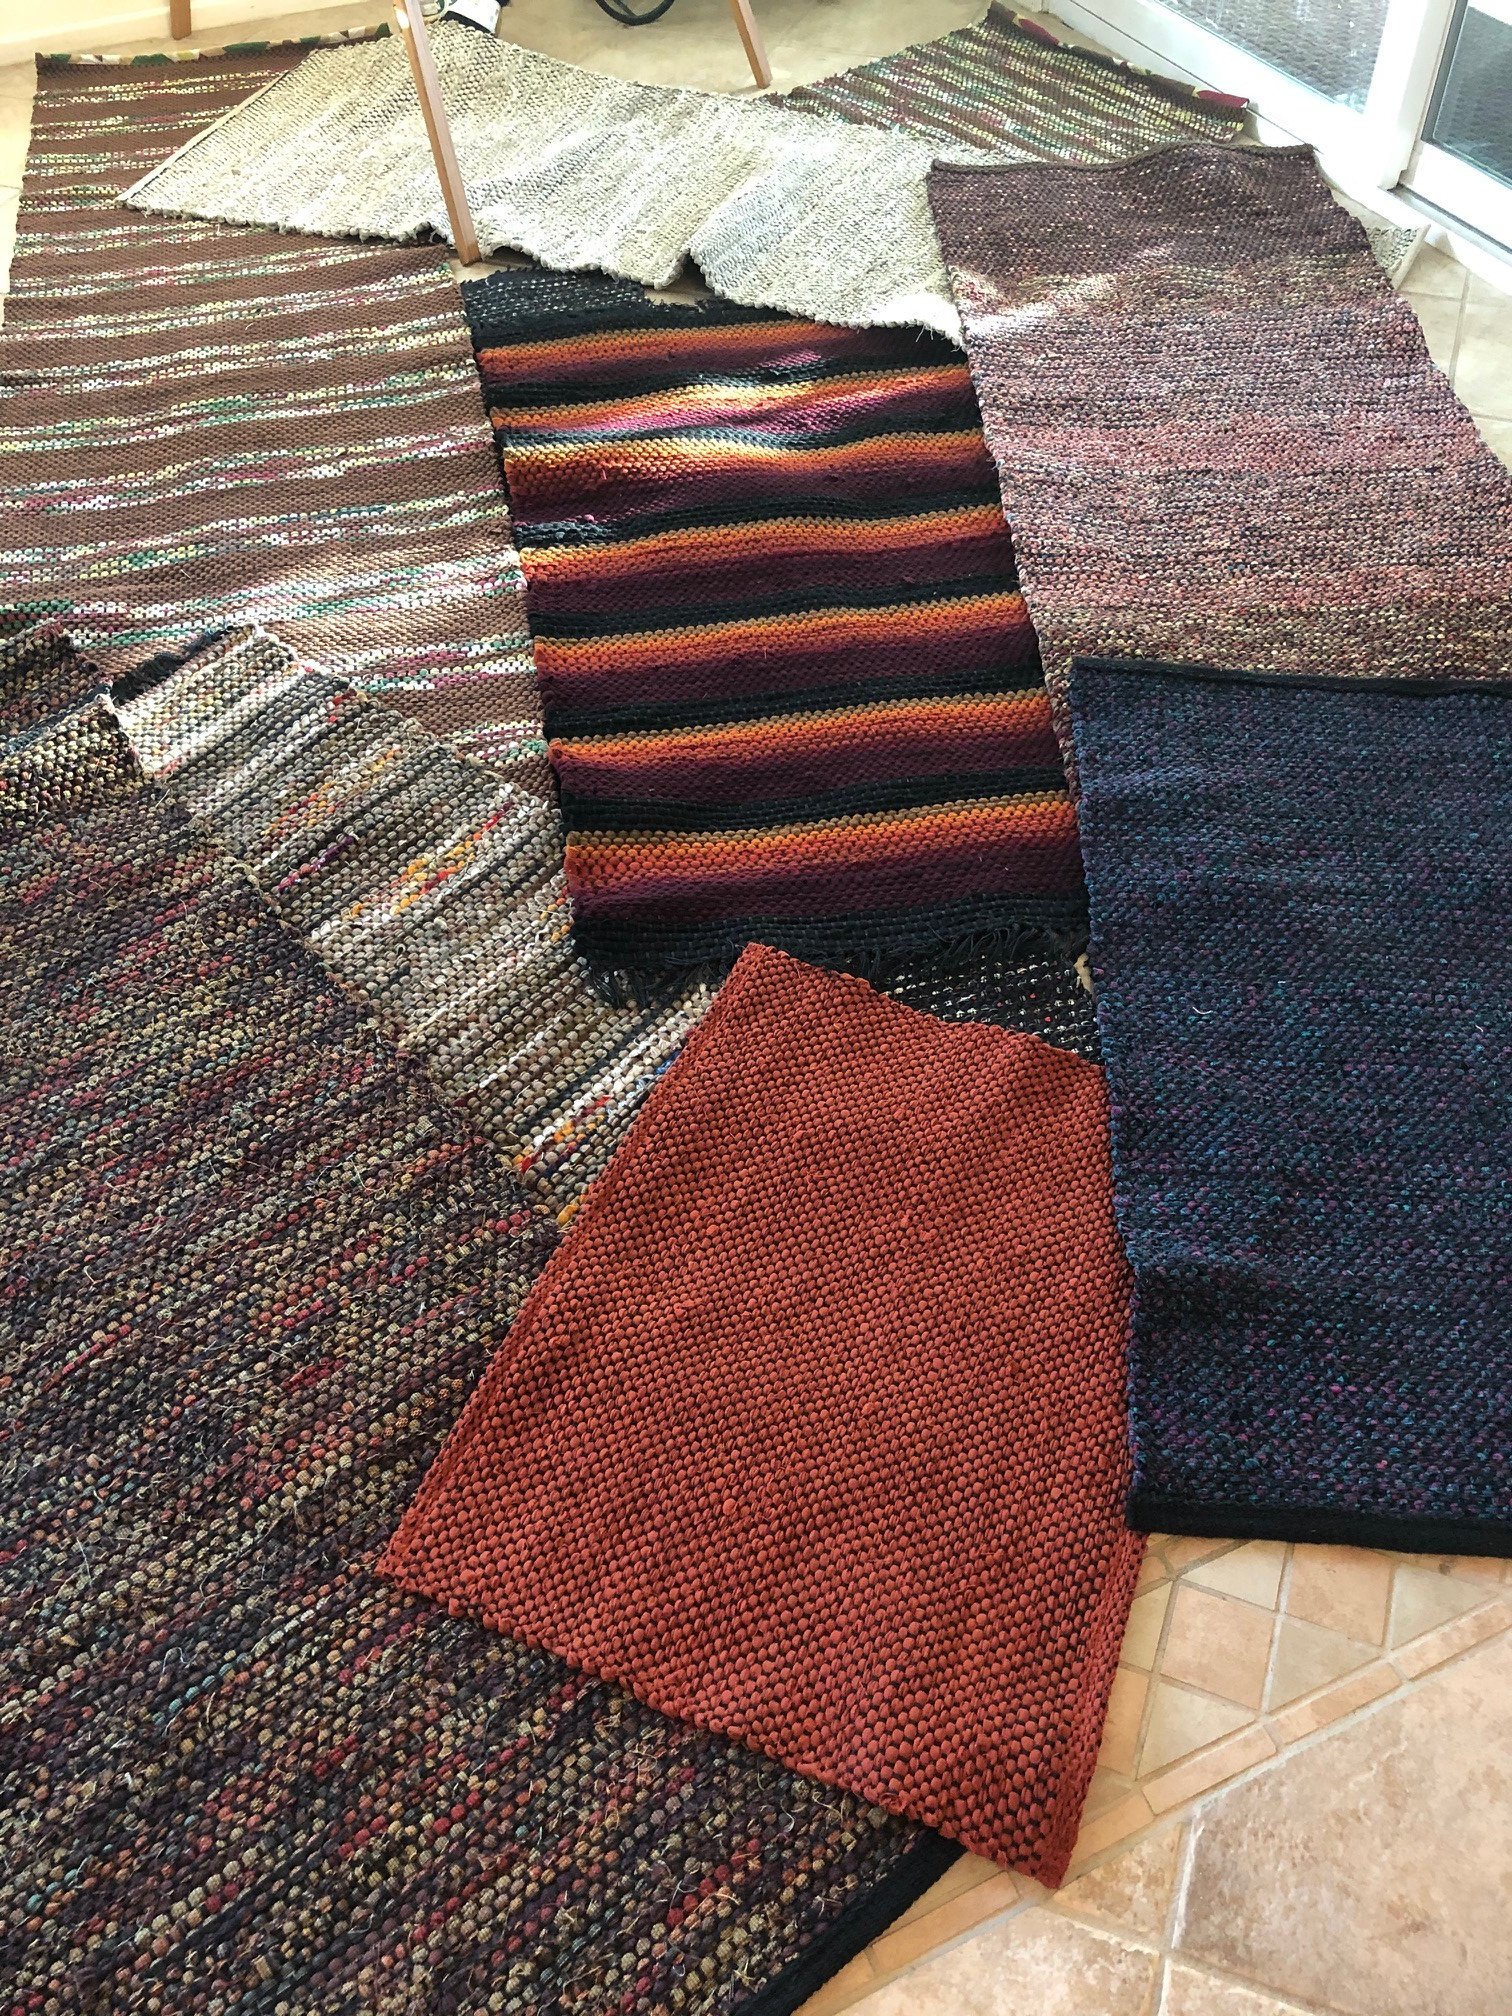 More rugs from Winnie